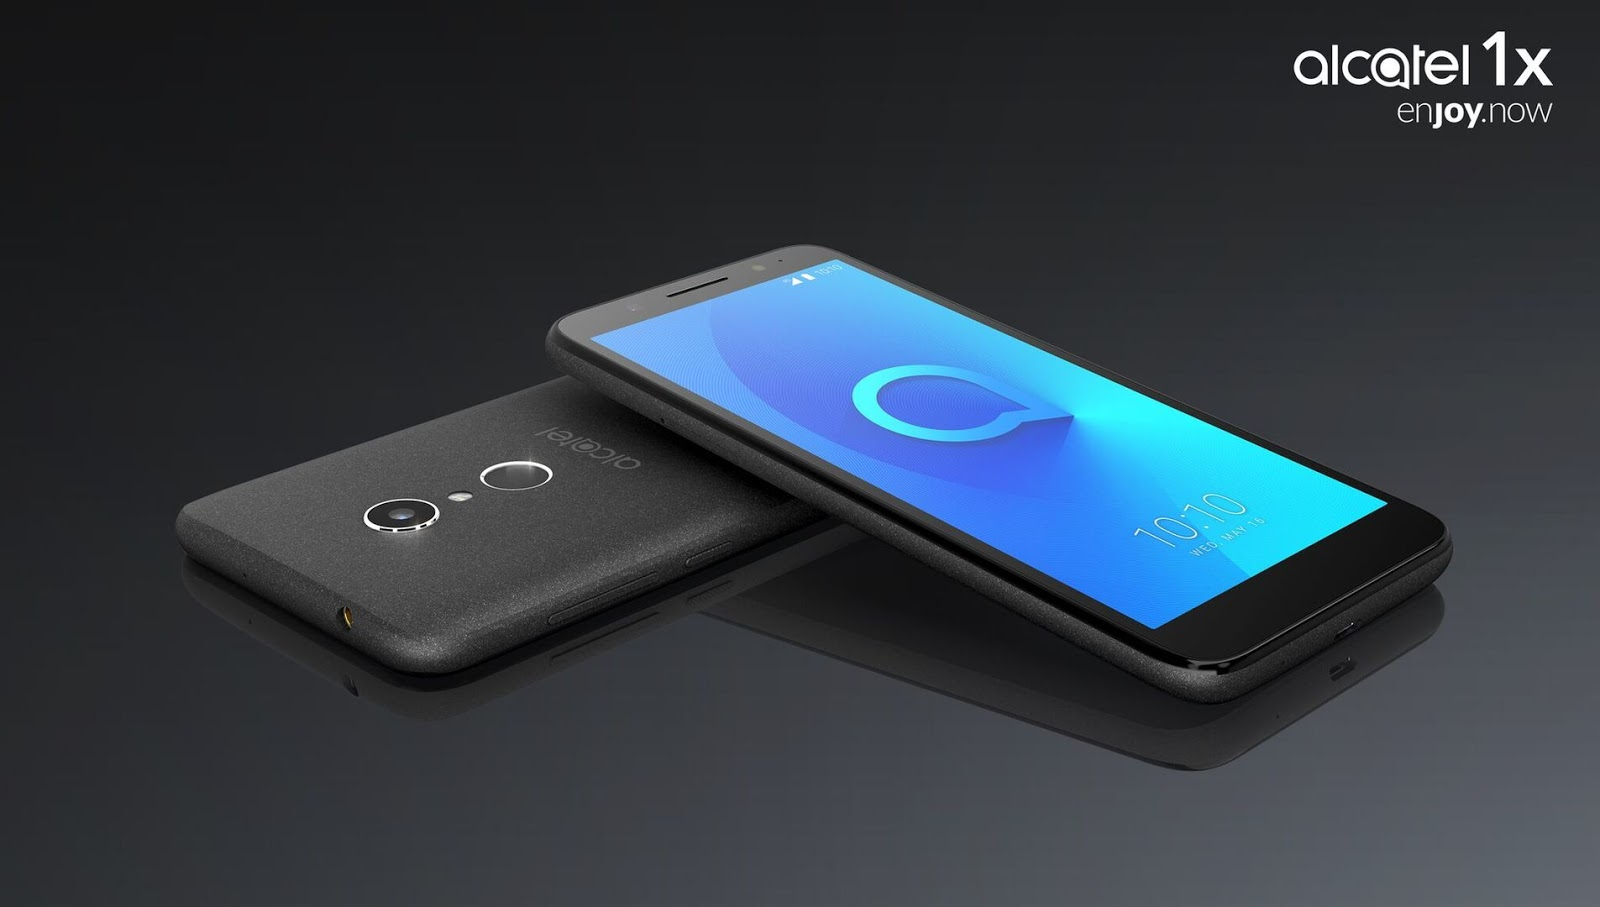 Alcatel 1x with Android Oreo Go edition in india